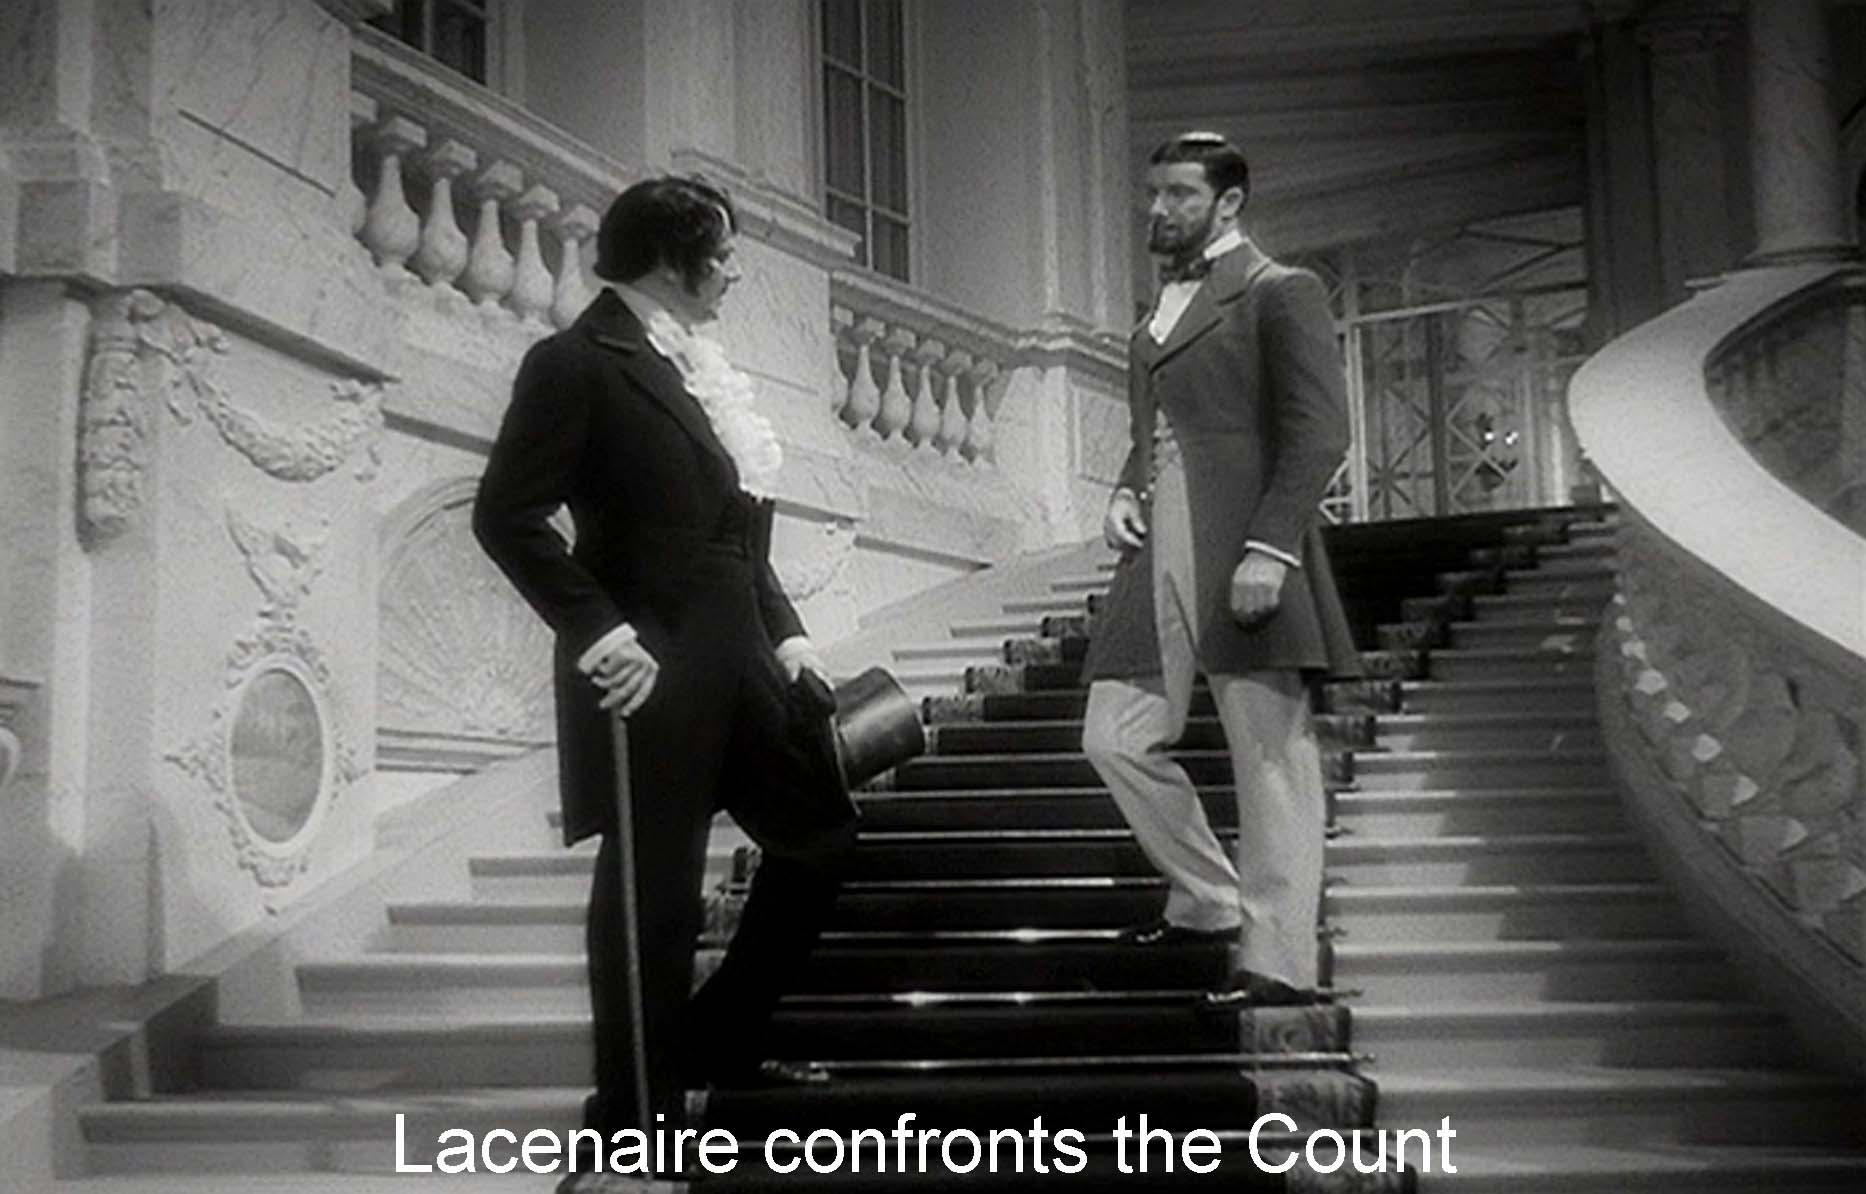 Lacenaire confronts the Count